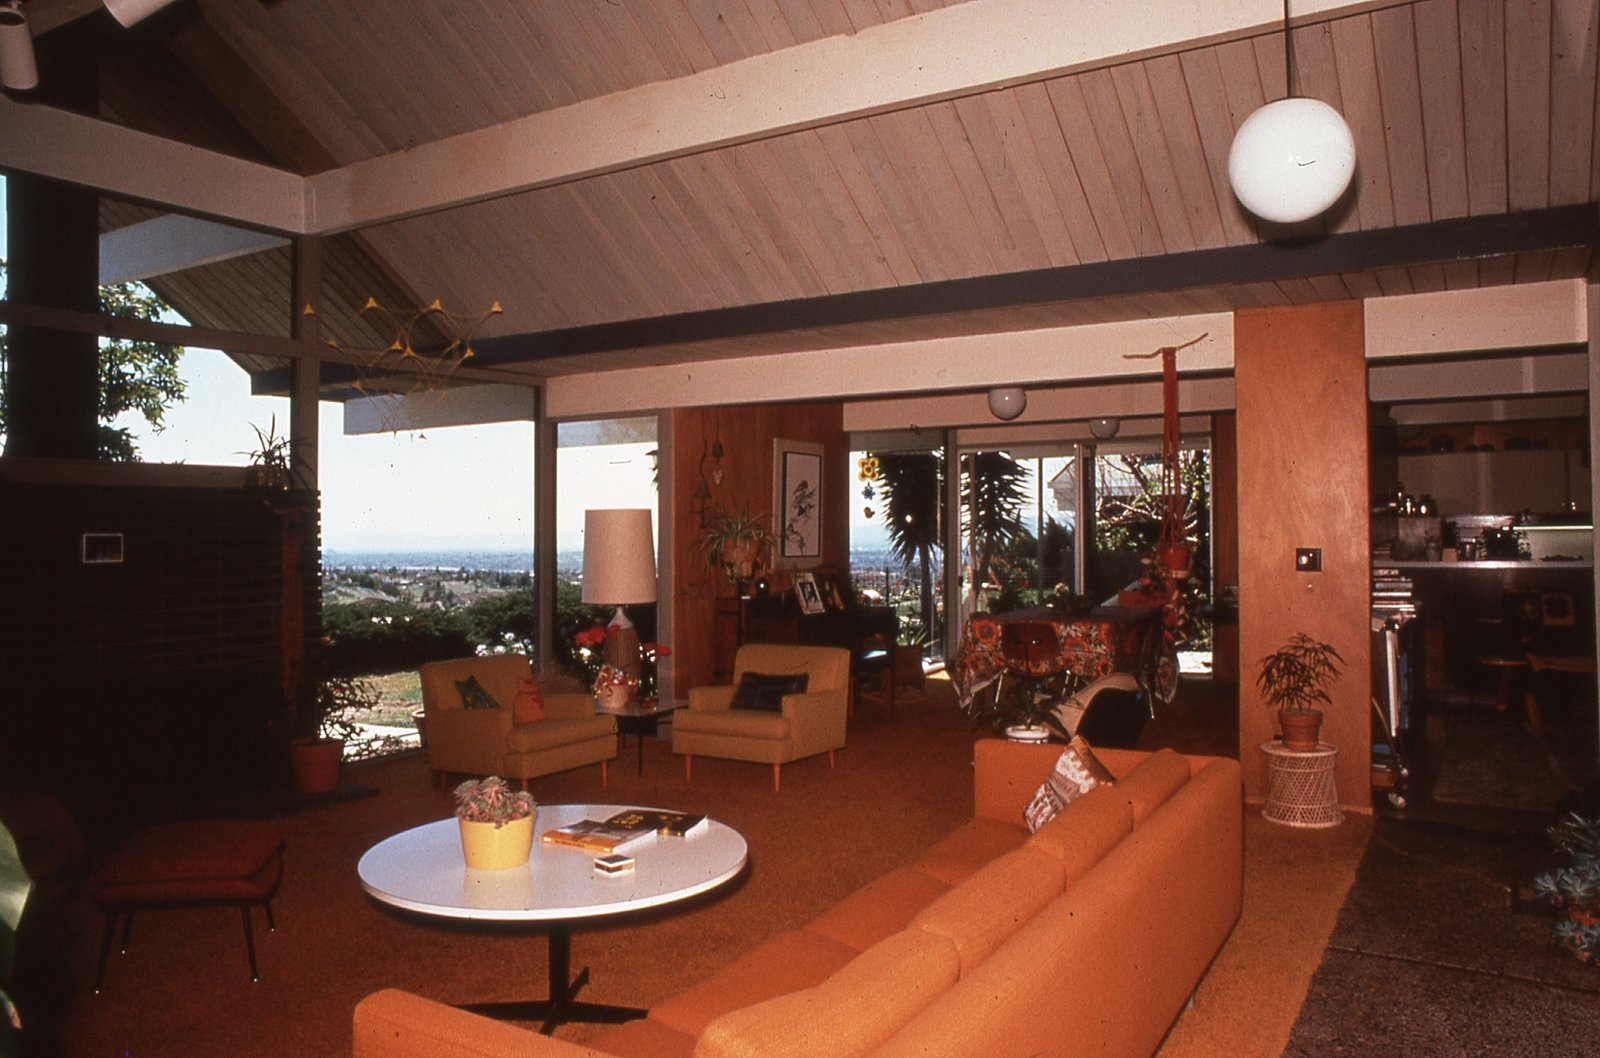 Living room, Balboa Highlands, Granada Hills, California, by Joseph Eichler.  Photo 6 of 6 in Never-Before-Seen Images of Iconic Midcentury Modern Eichler Homes